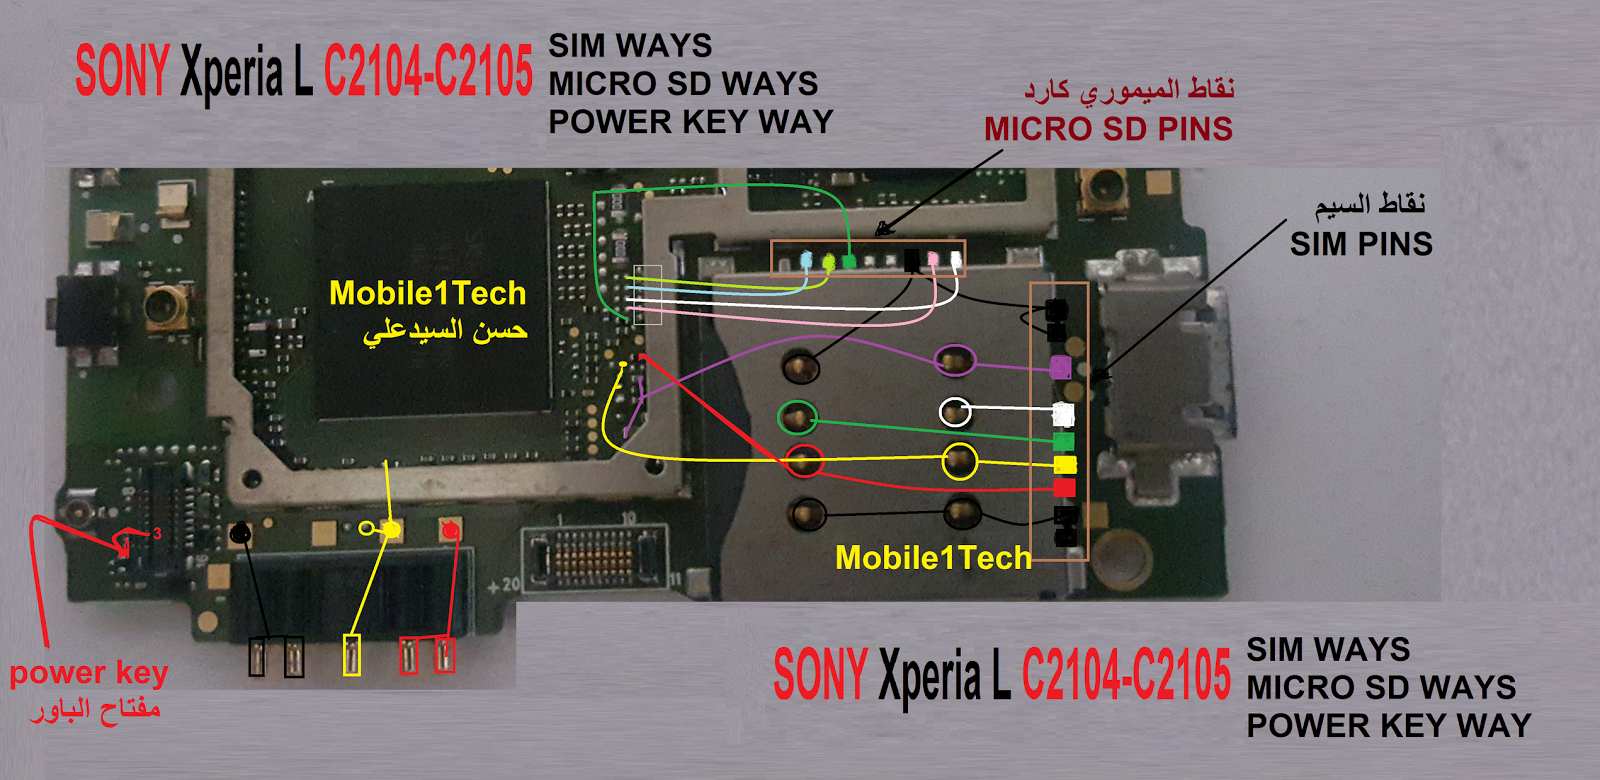 hight resolution of sony xperia l circuit diagram wiring diagram paper sony xperia l c2104 c2105 full schematic mobile1tech